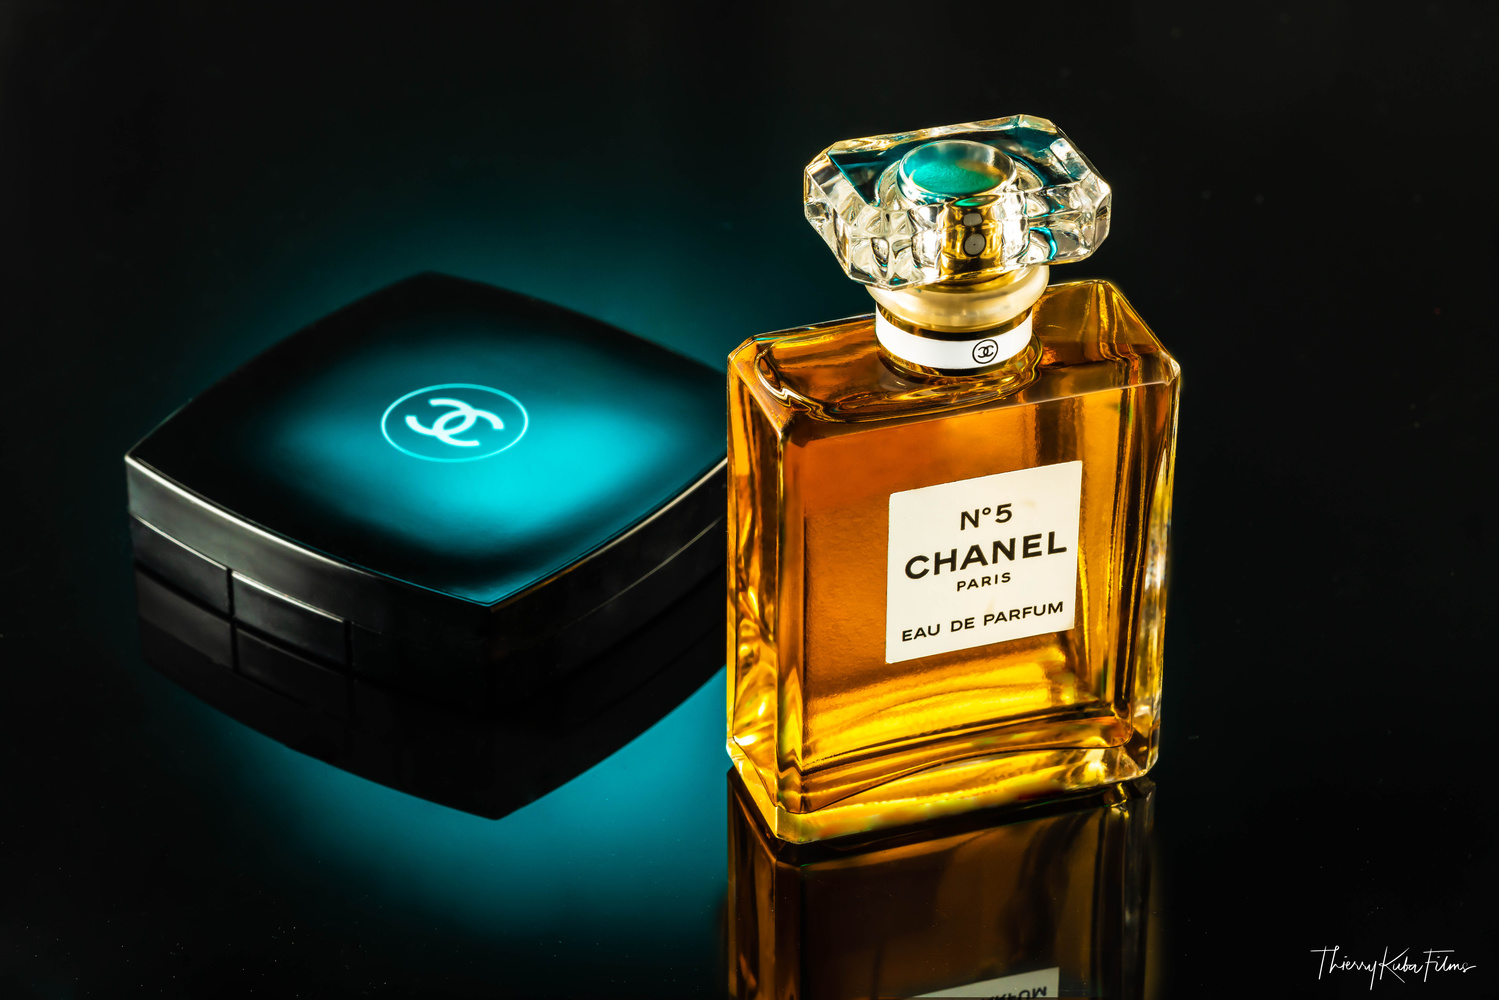 Chanel No5 concept by Thierry KUBA